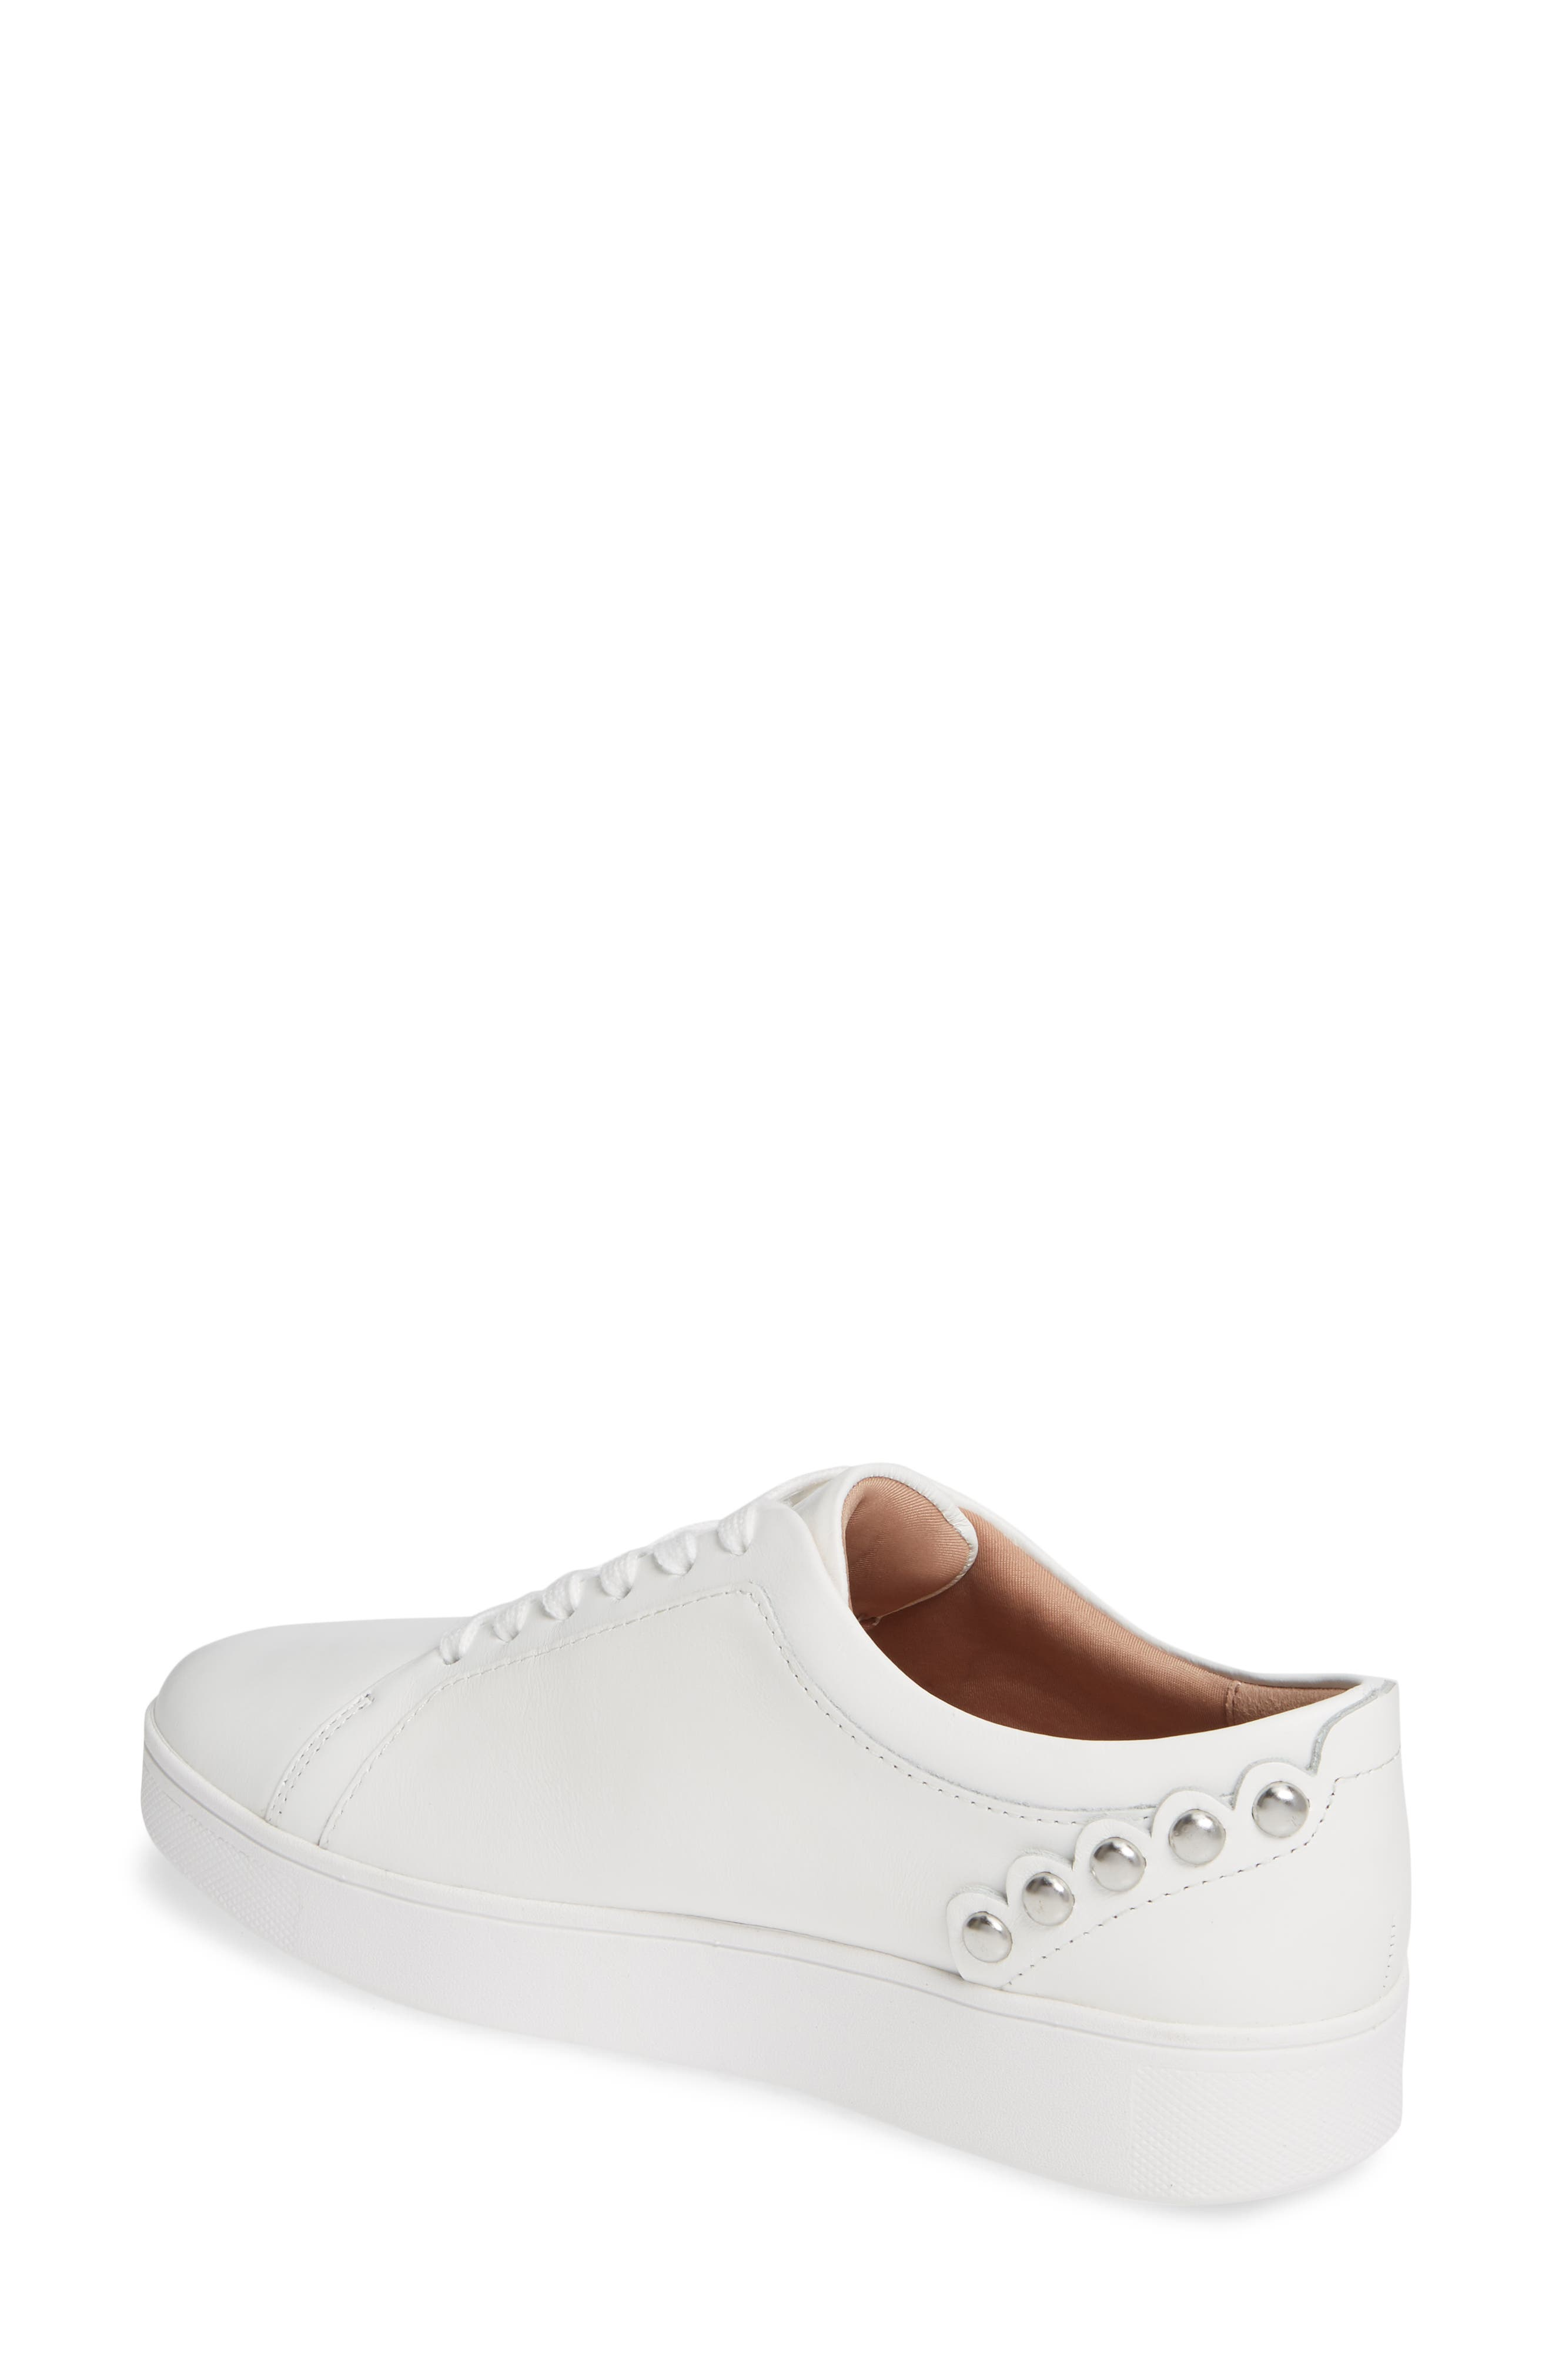 FITFLOP, Rally Studded Sneaker, Alternate thumbnail 2, color, URBAN WHITE LEATHER